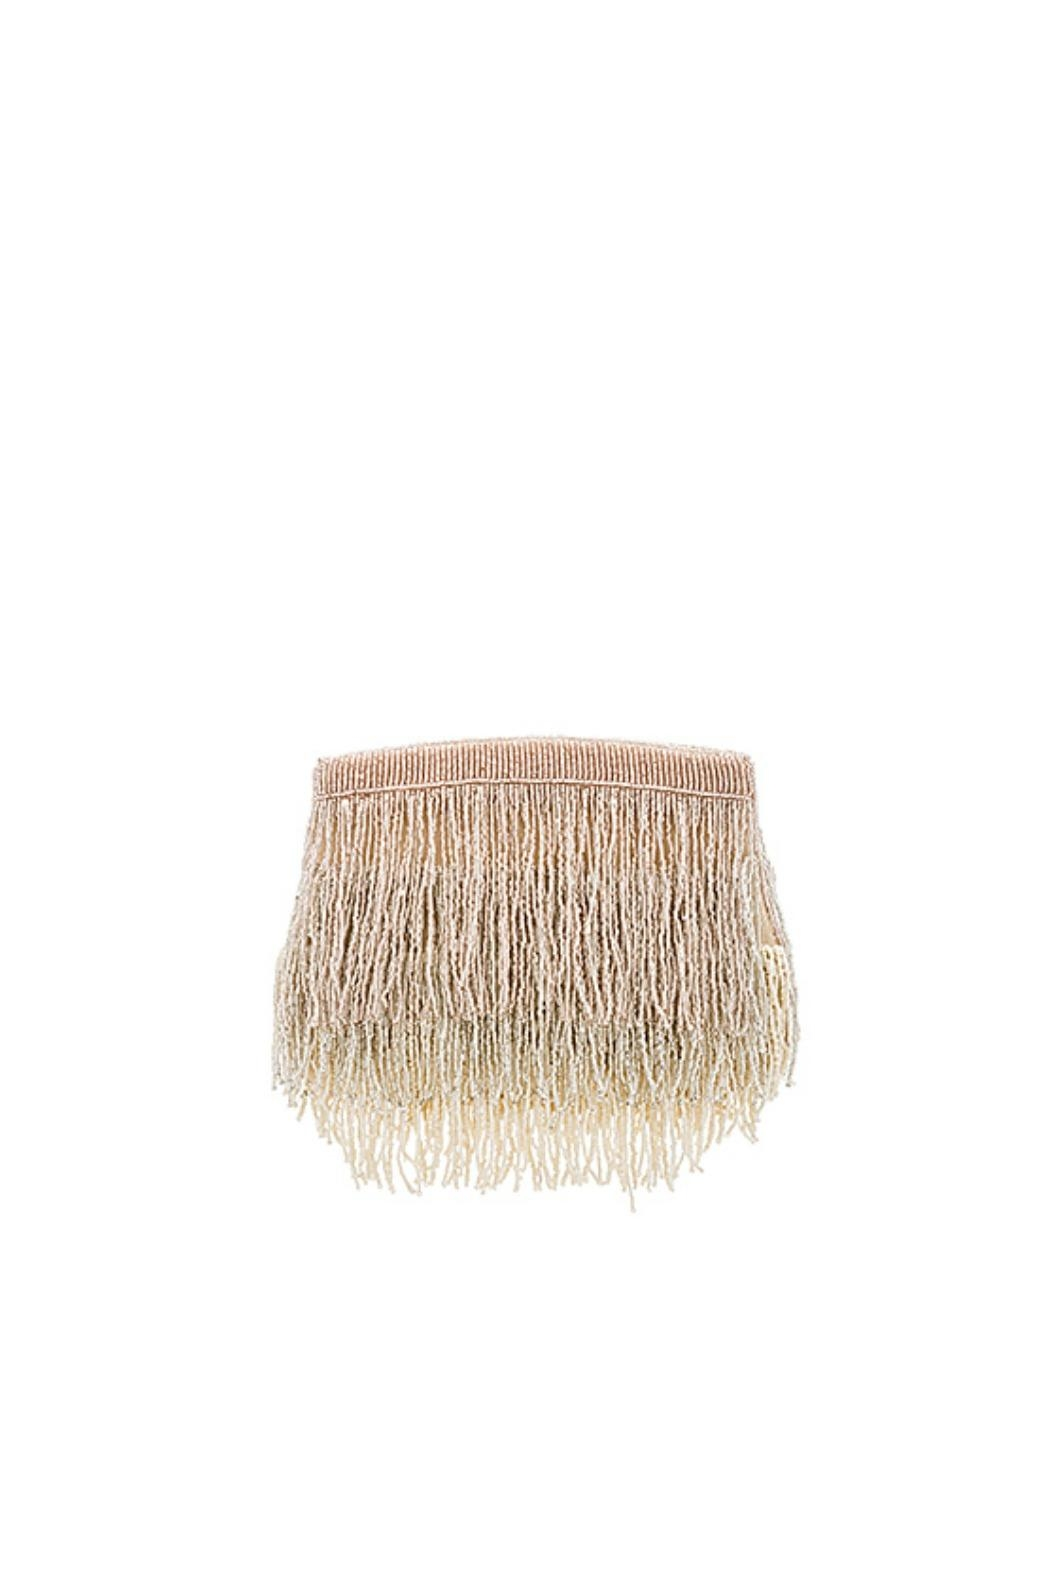 From St. Xavier  Sienna Fringe Beaded Clutch - Main Image